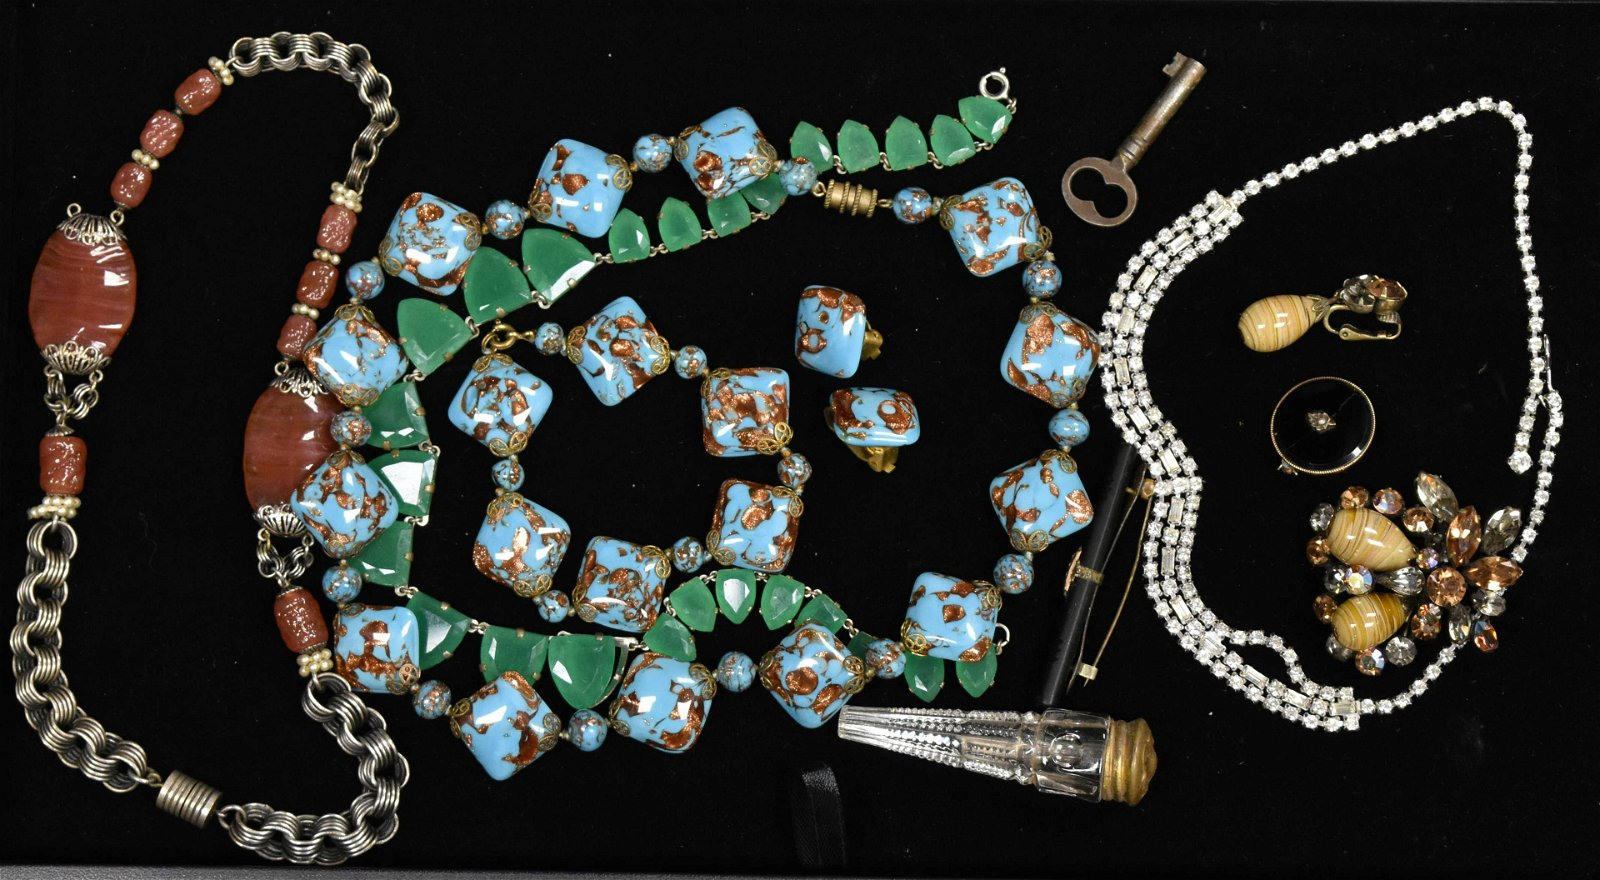 Vintage Glass and Mineral Jewelry